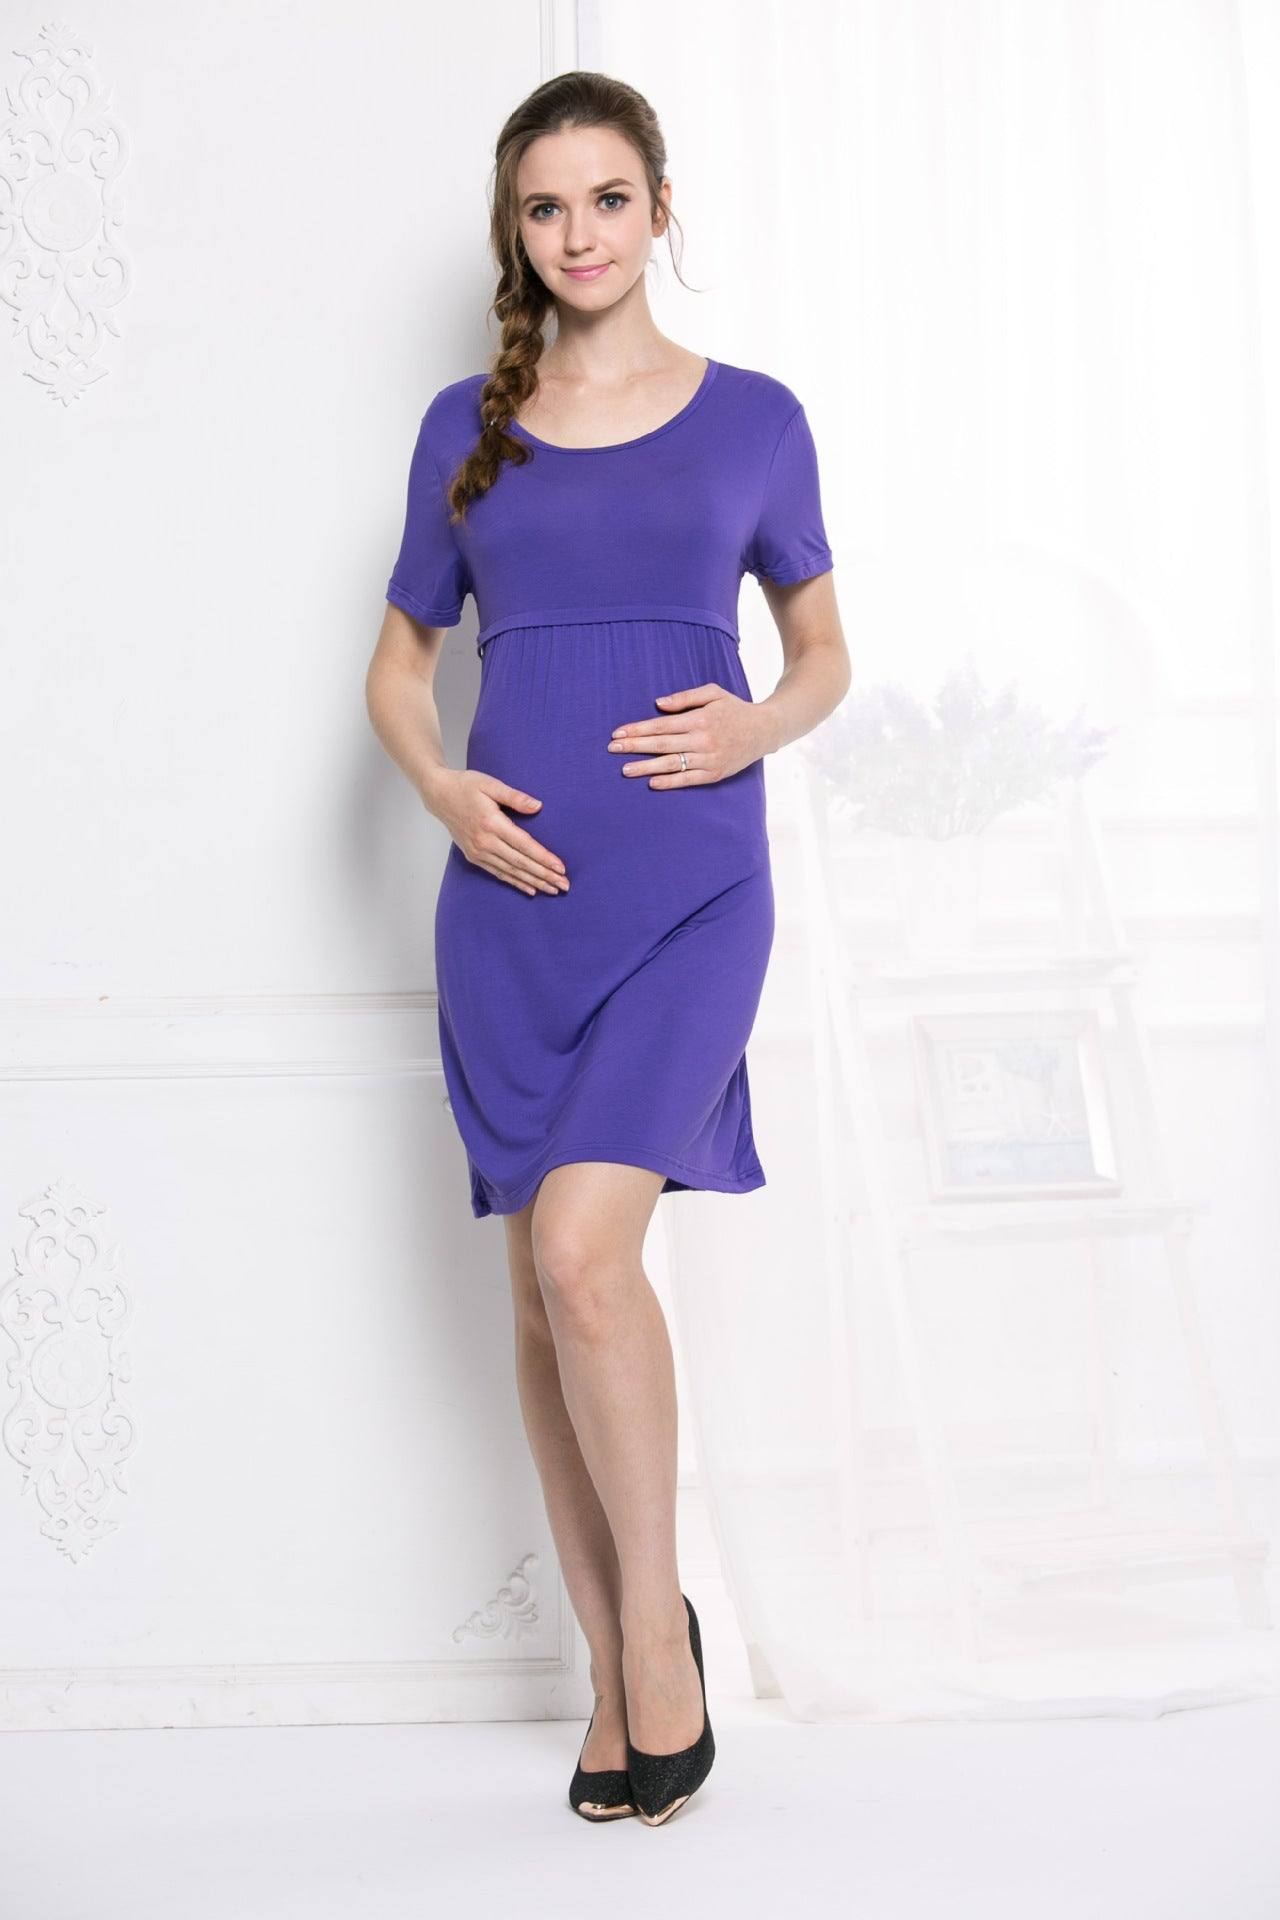 Breast-feeding Dress Maternity Dress